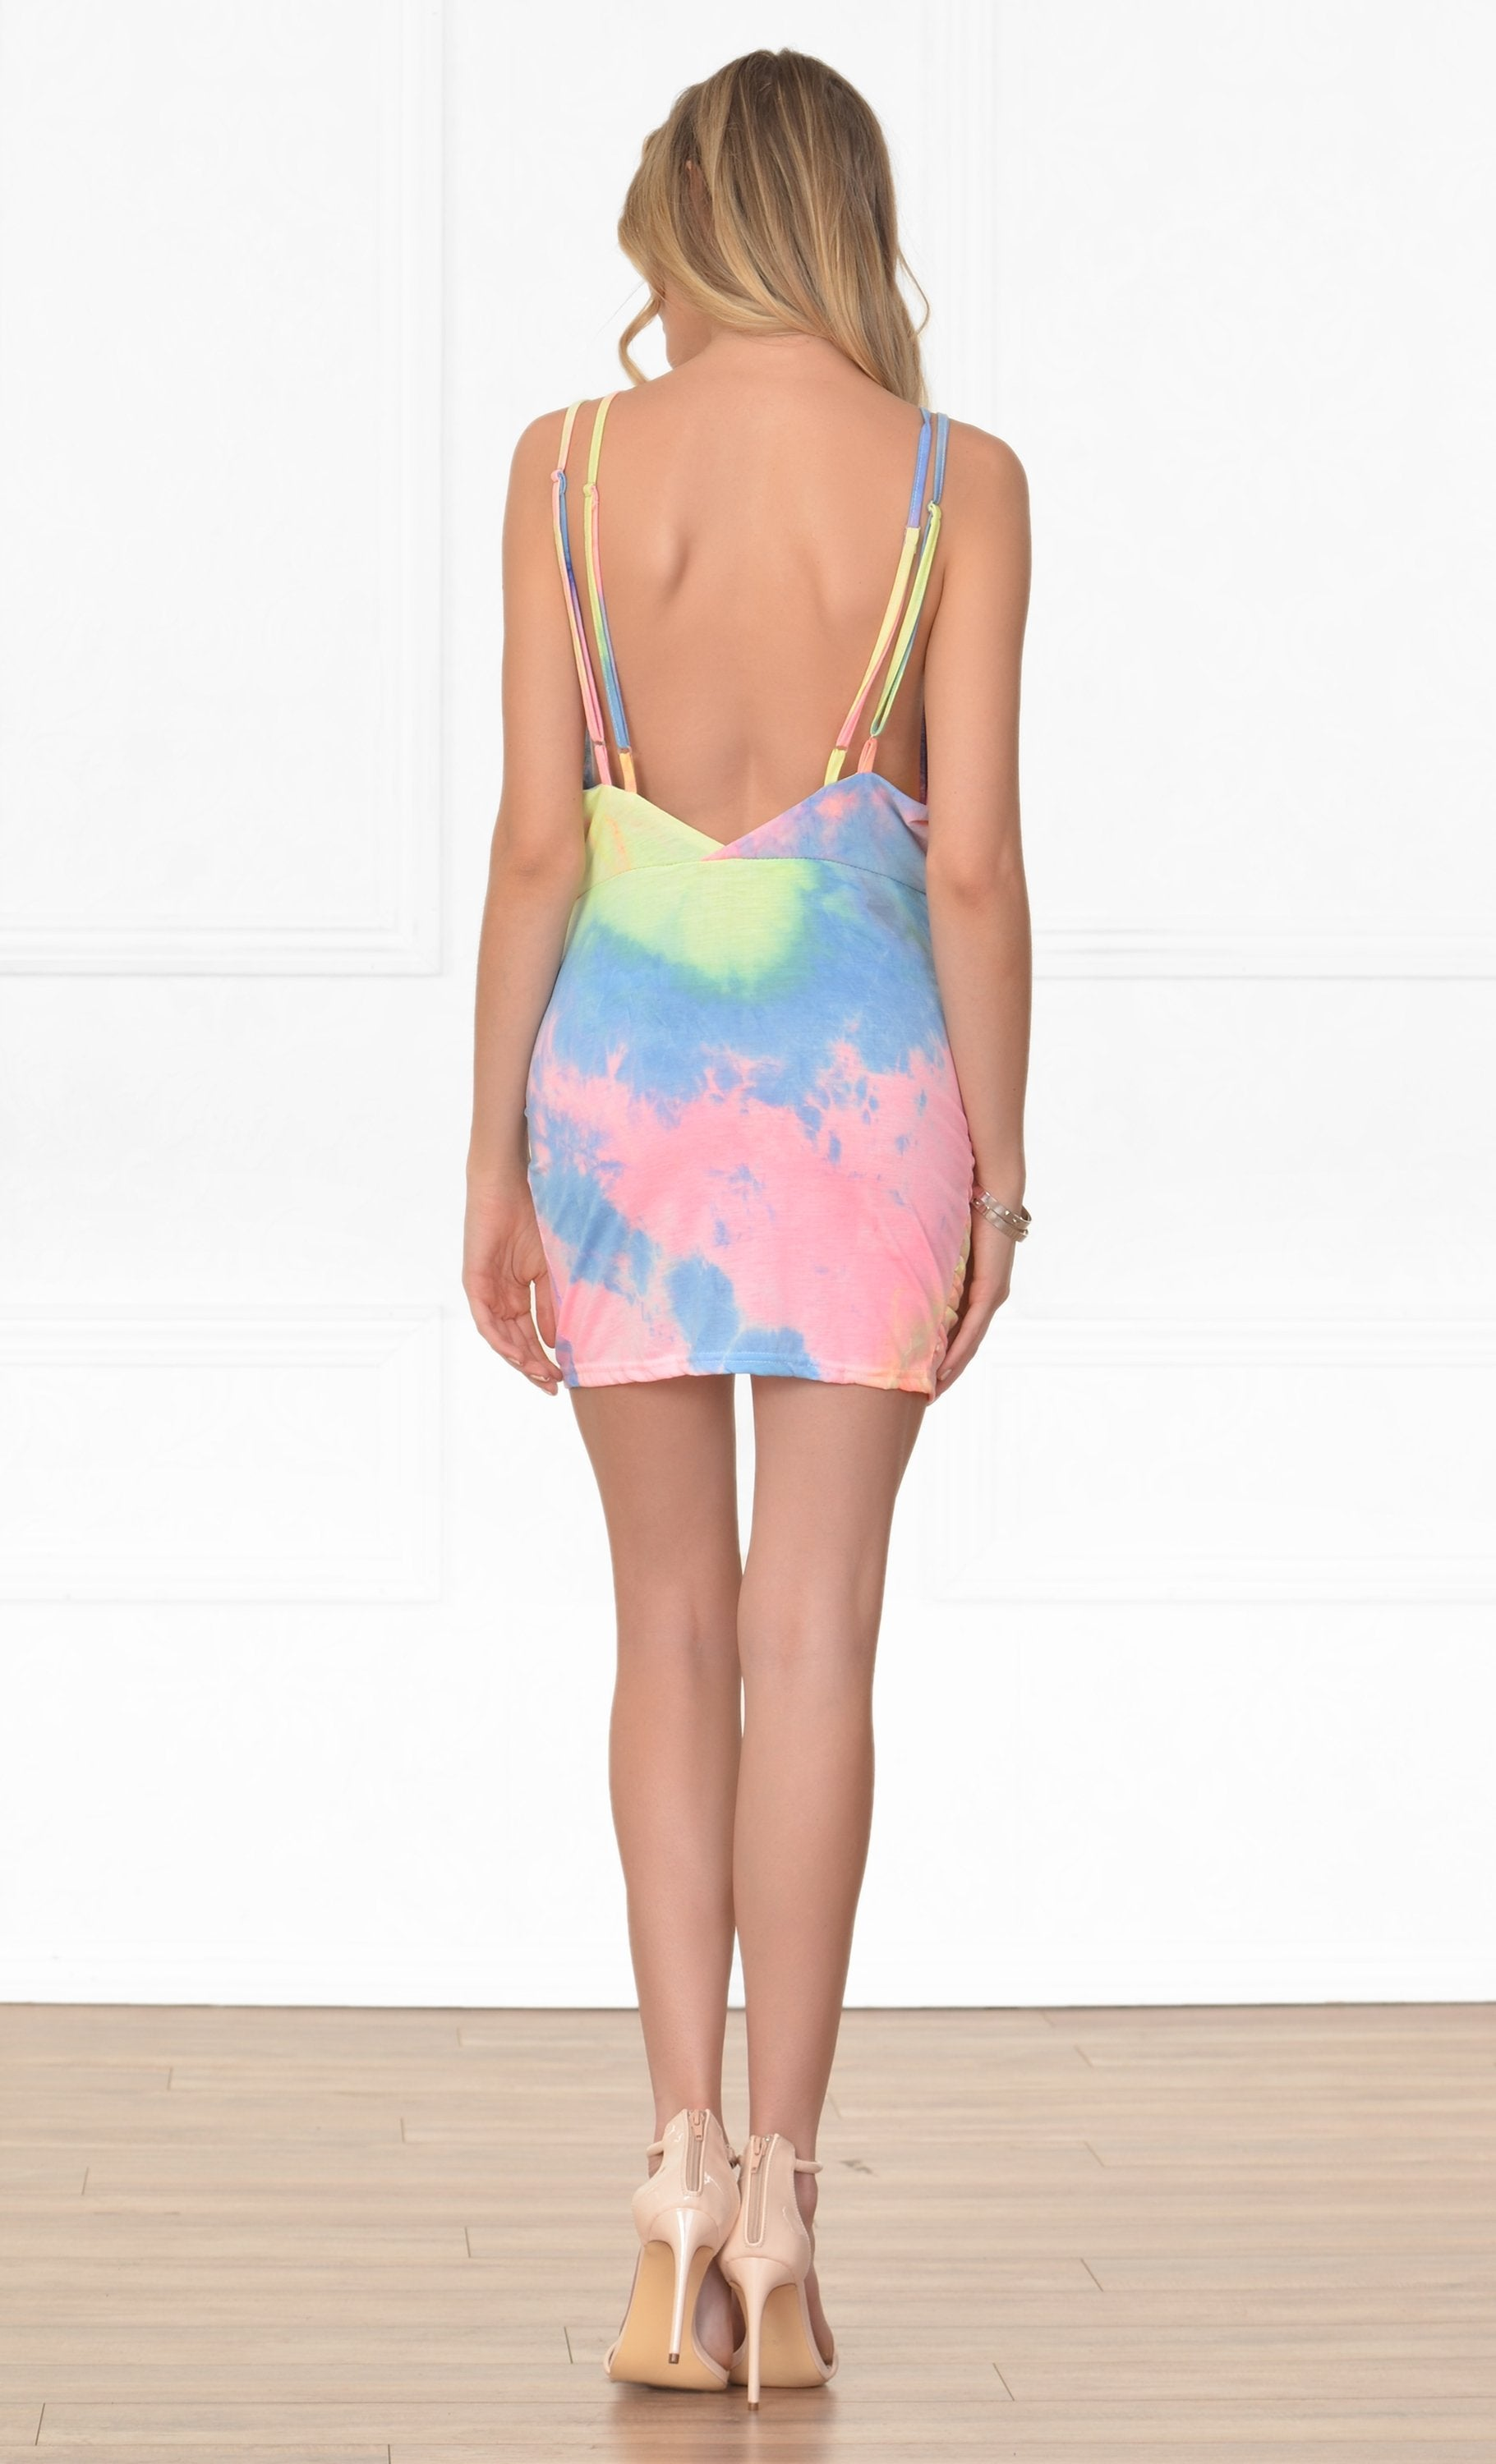 Indie XO Peace and Love Blue Yellow Pink Tie Dye Sleeveless Plunge V Neck Halter Backless Ruched Tulip Bodycon Mini Dress - Sold Out